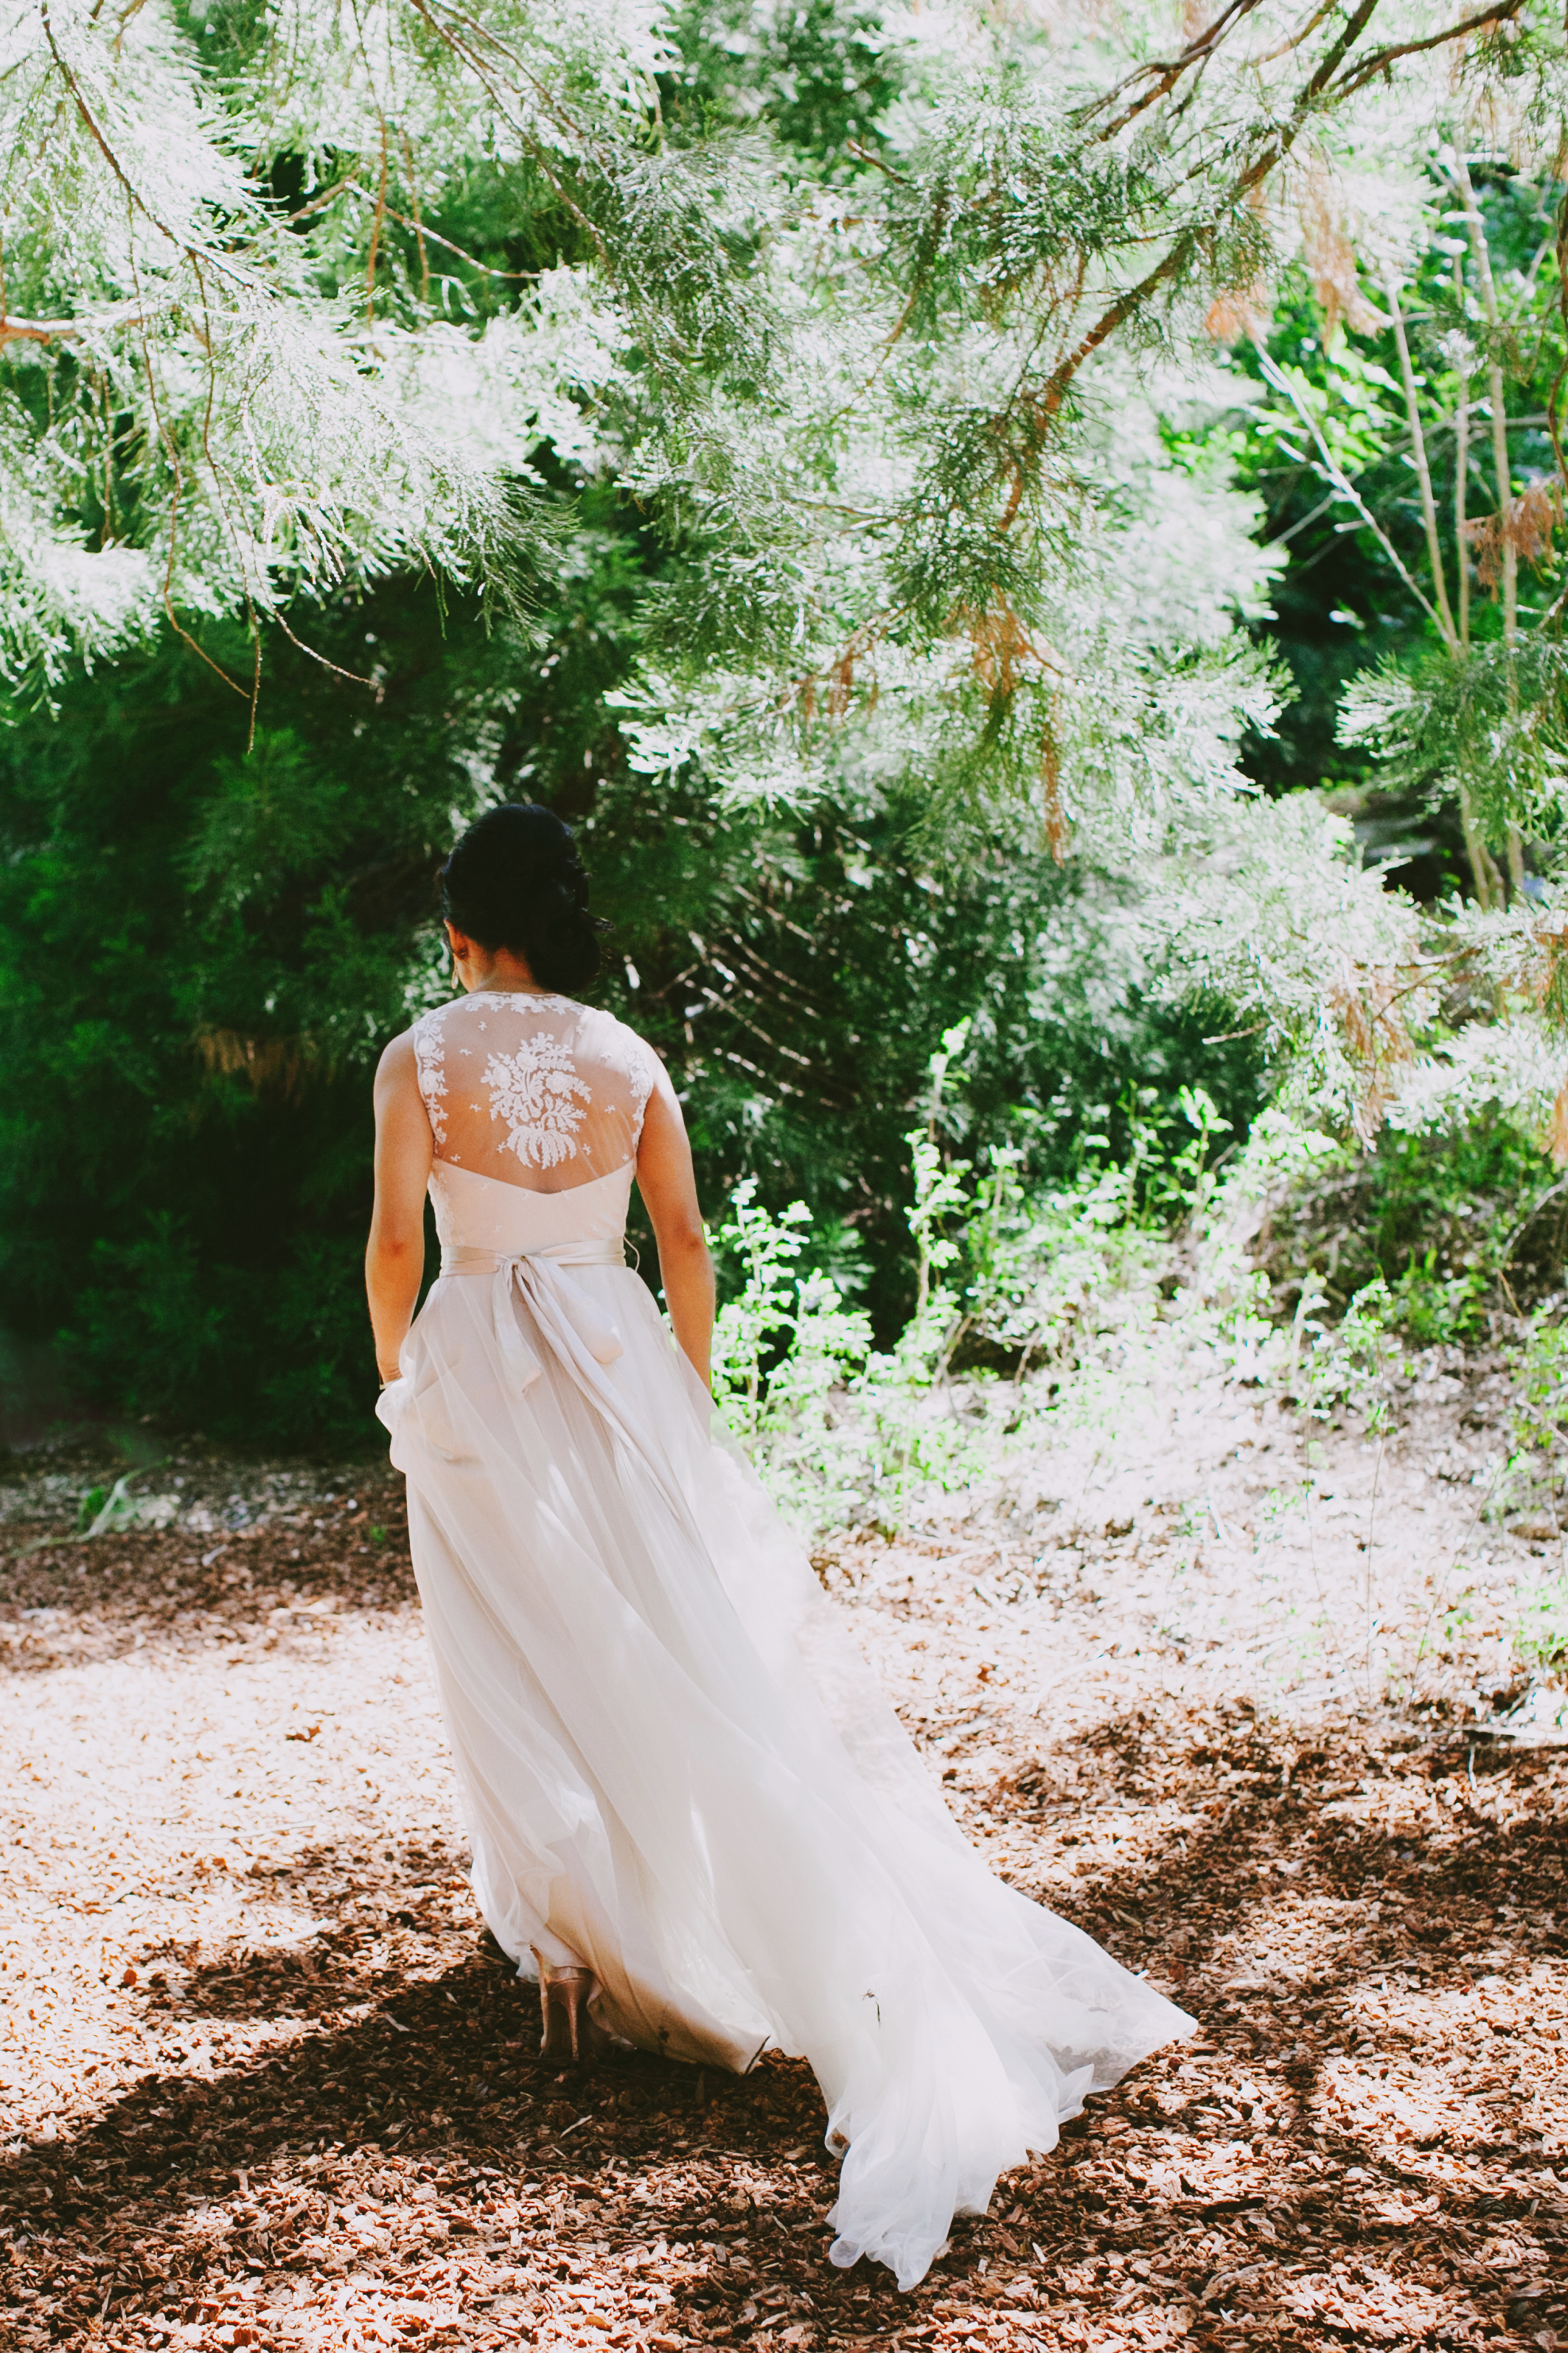 Tilden_Wedding_Berkeley-19.JPG